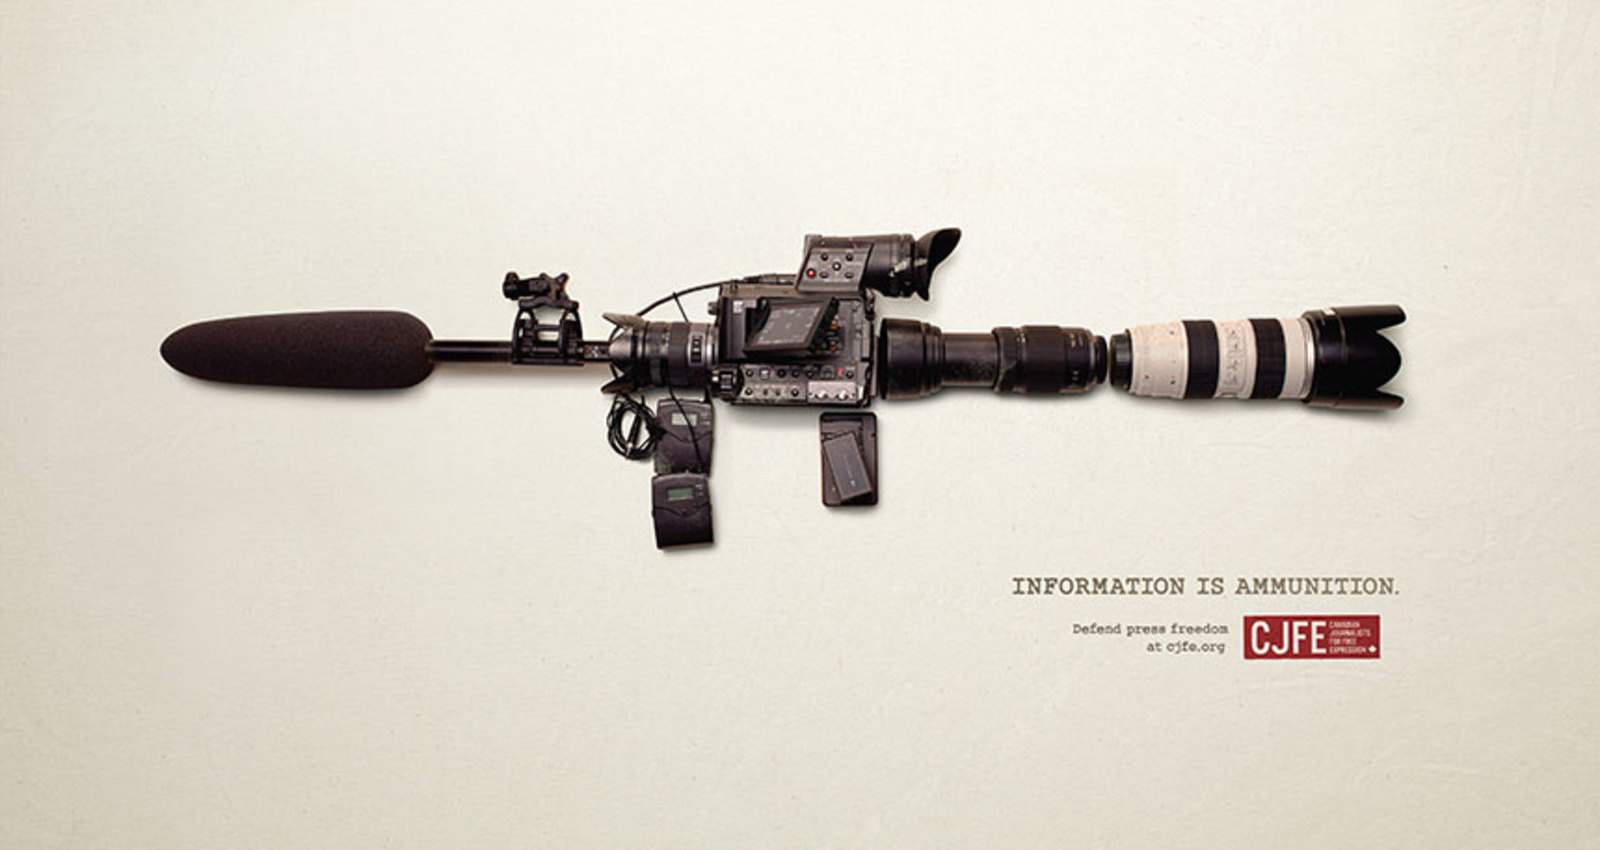 Information is Ammunition